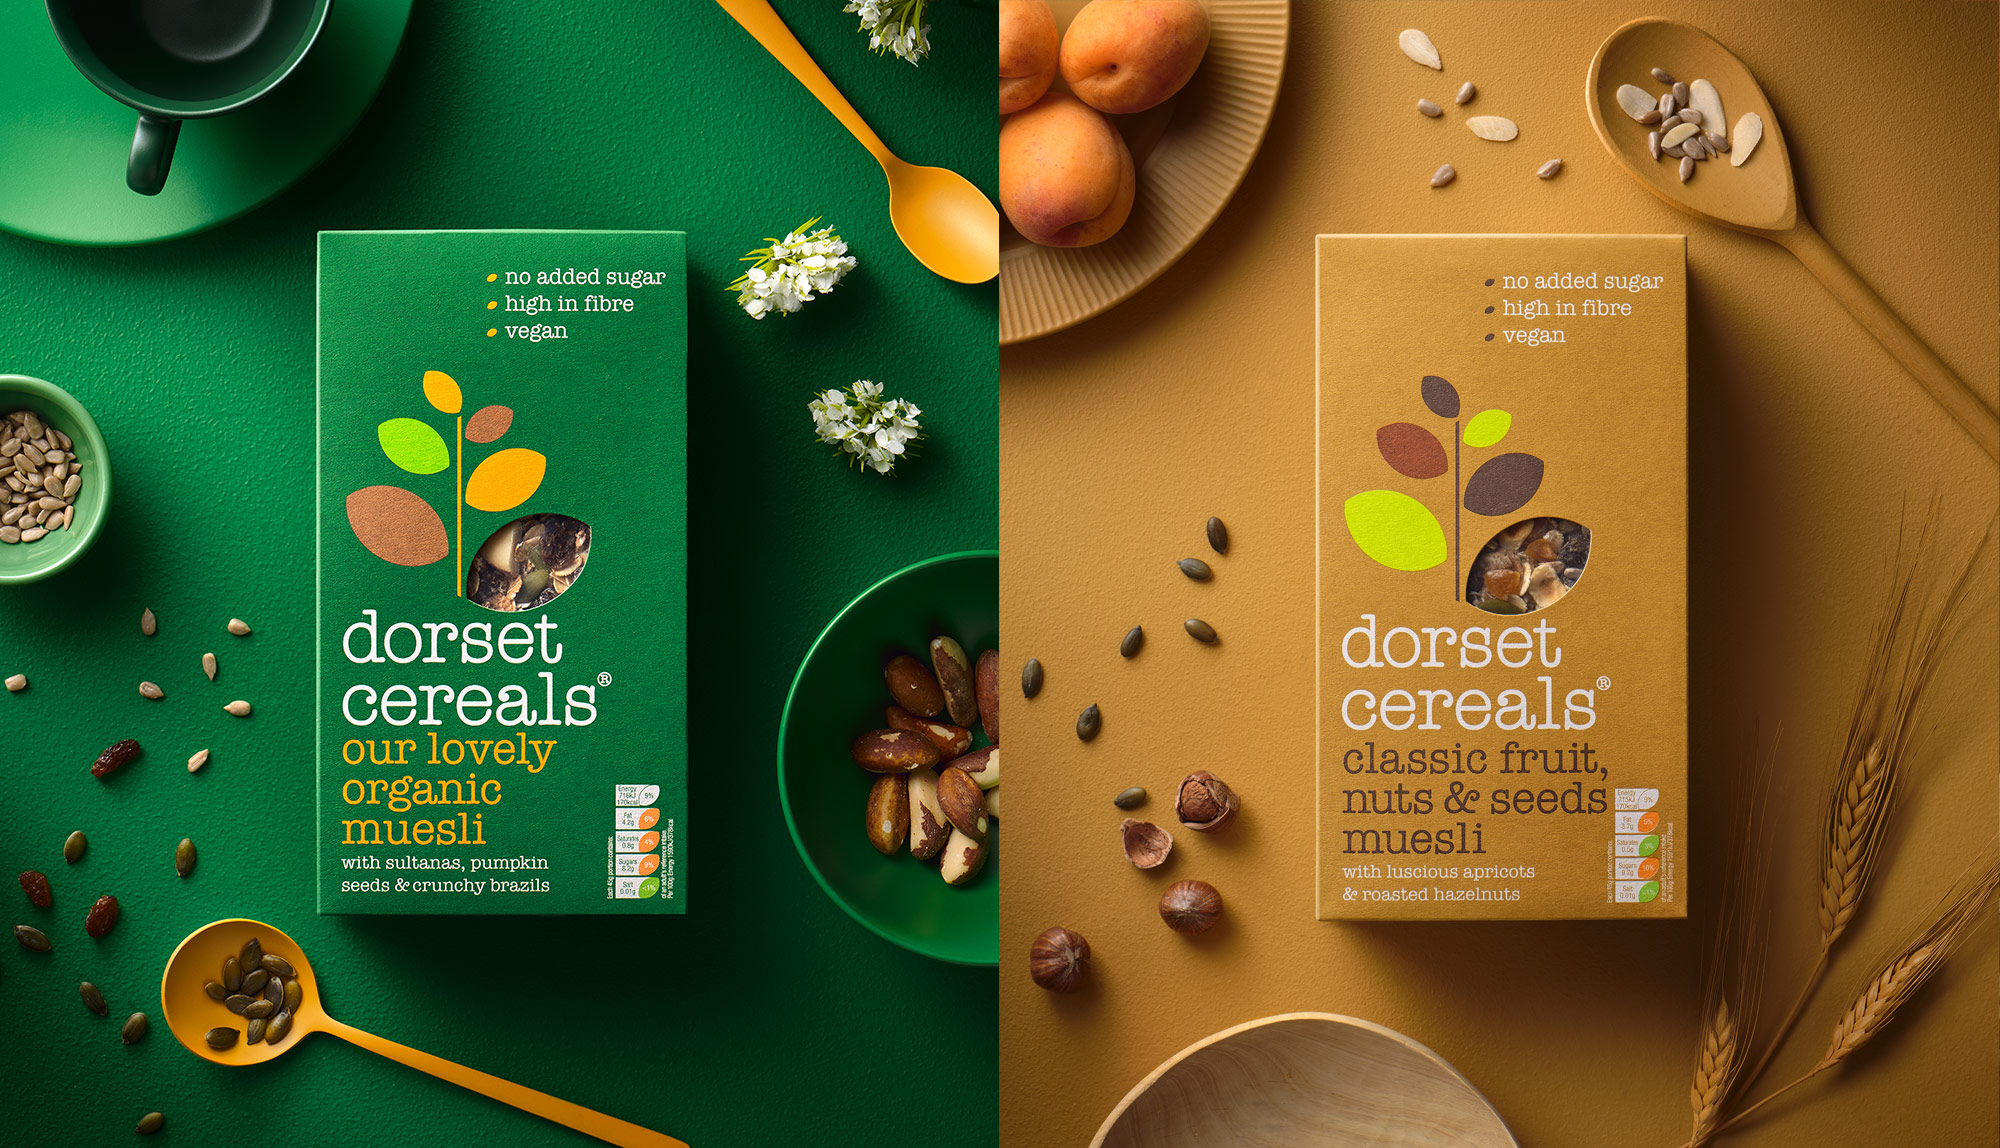 Dorset Cereals organic muesli and classic fruit nuts and seeds muesli